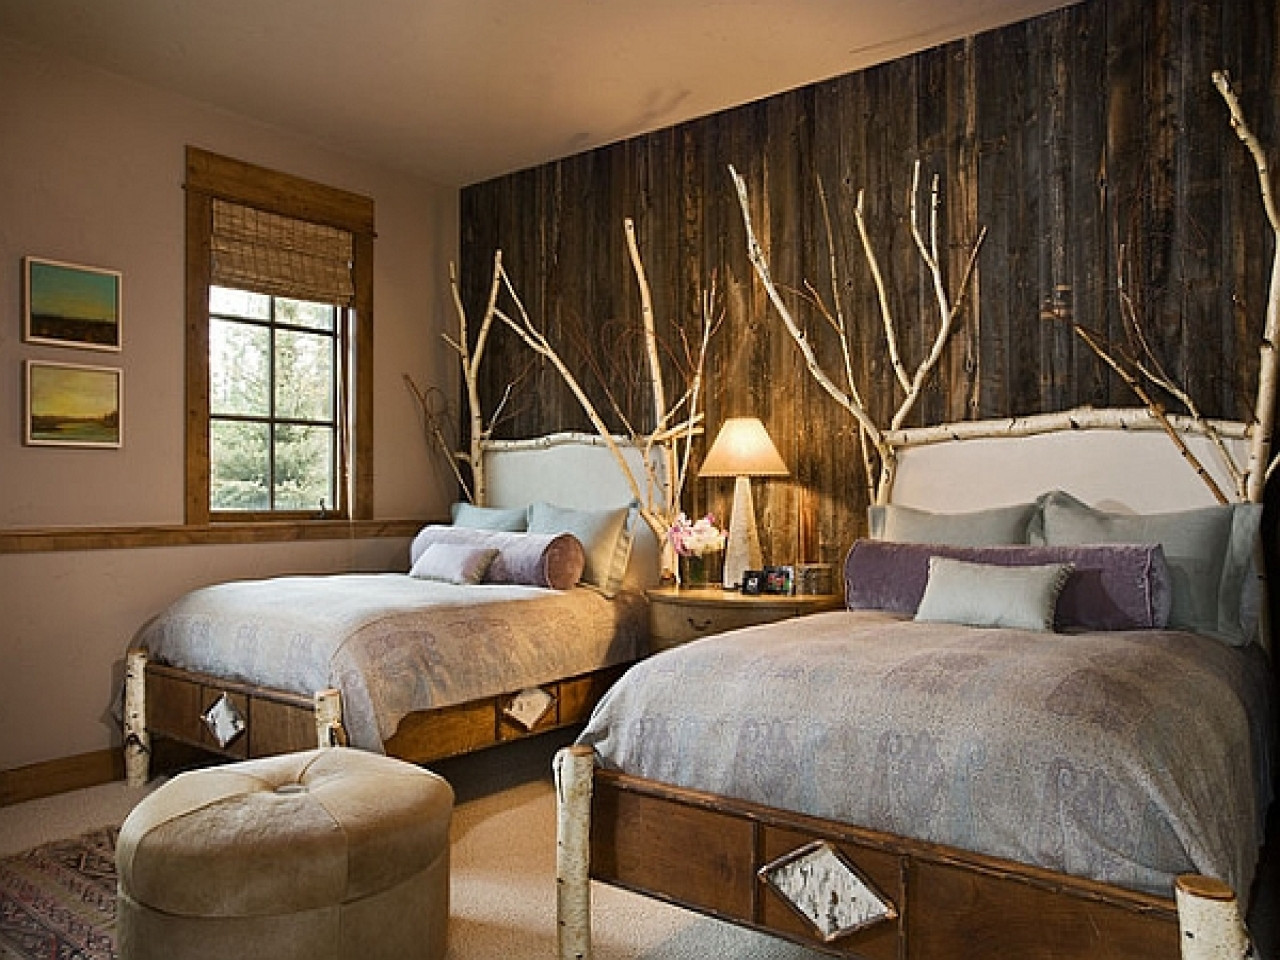 Best ideas about Accent Wall Decor . Save or Pin Decorating ideas for small master bedrooms rustic wood Now.